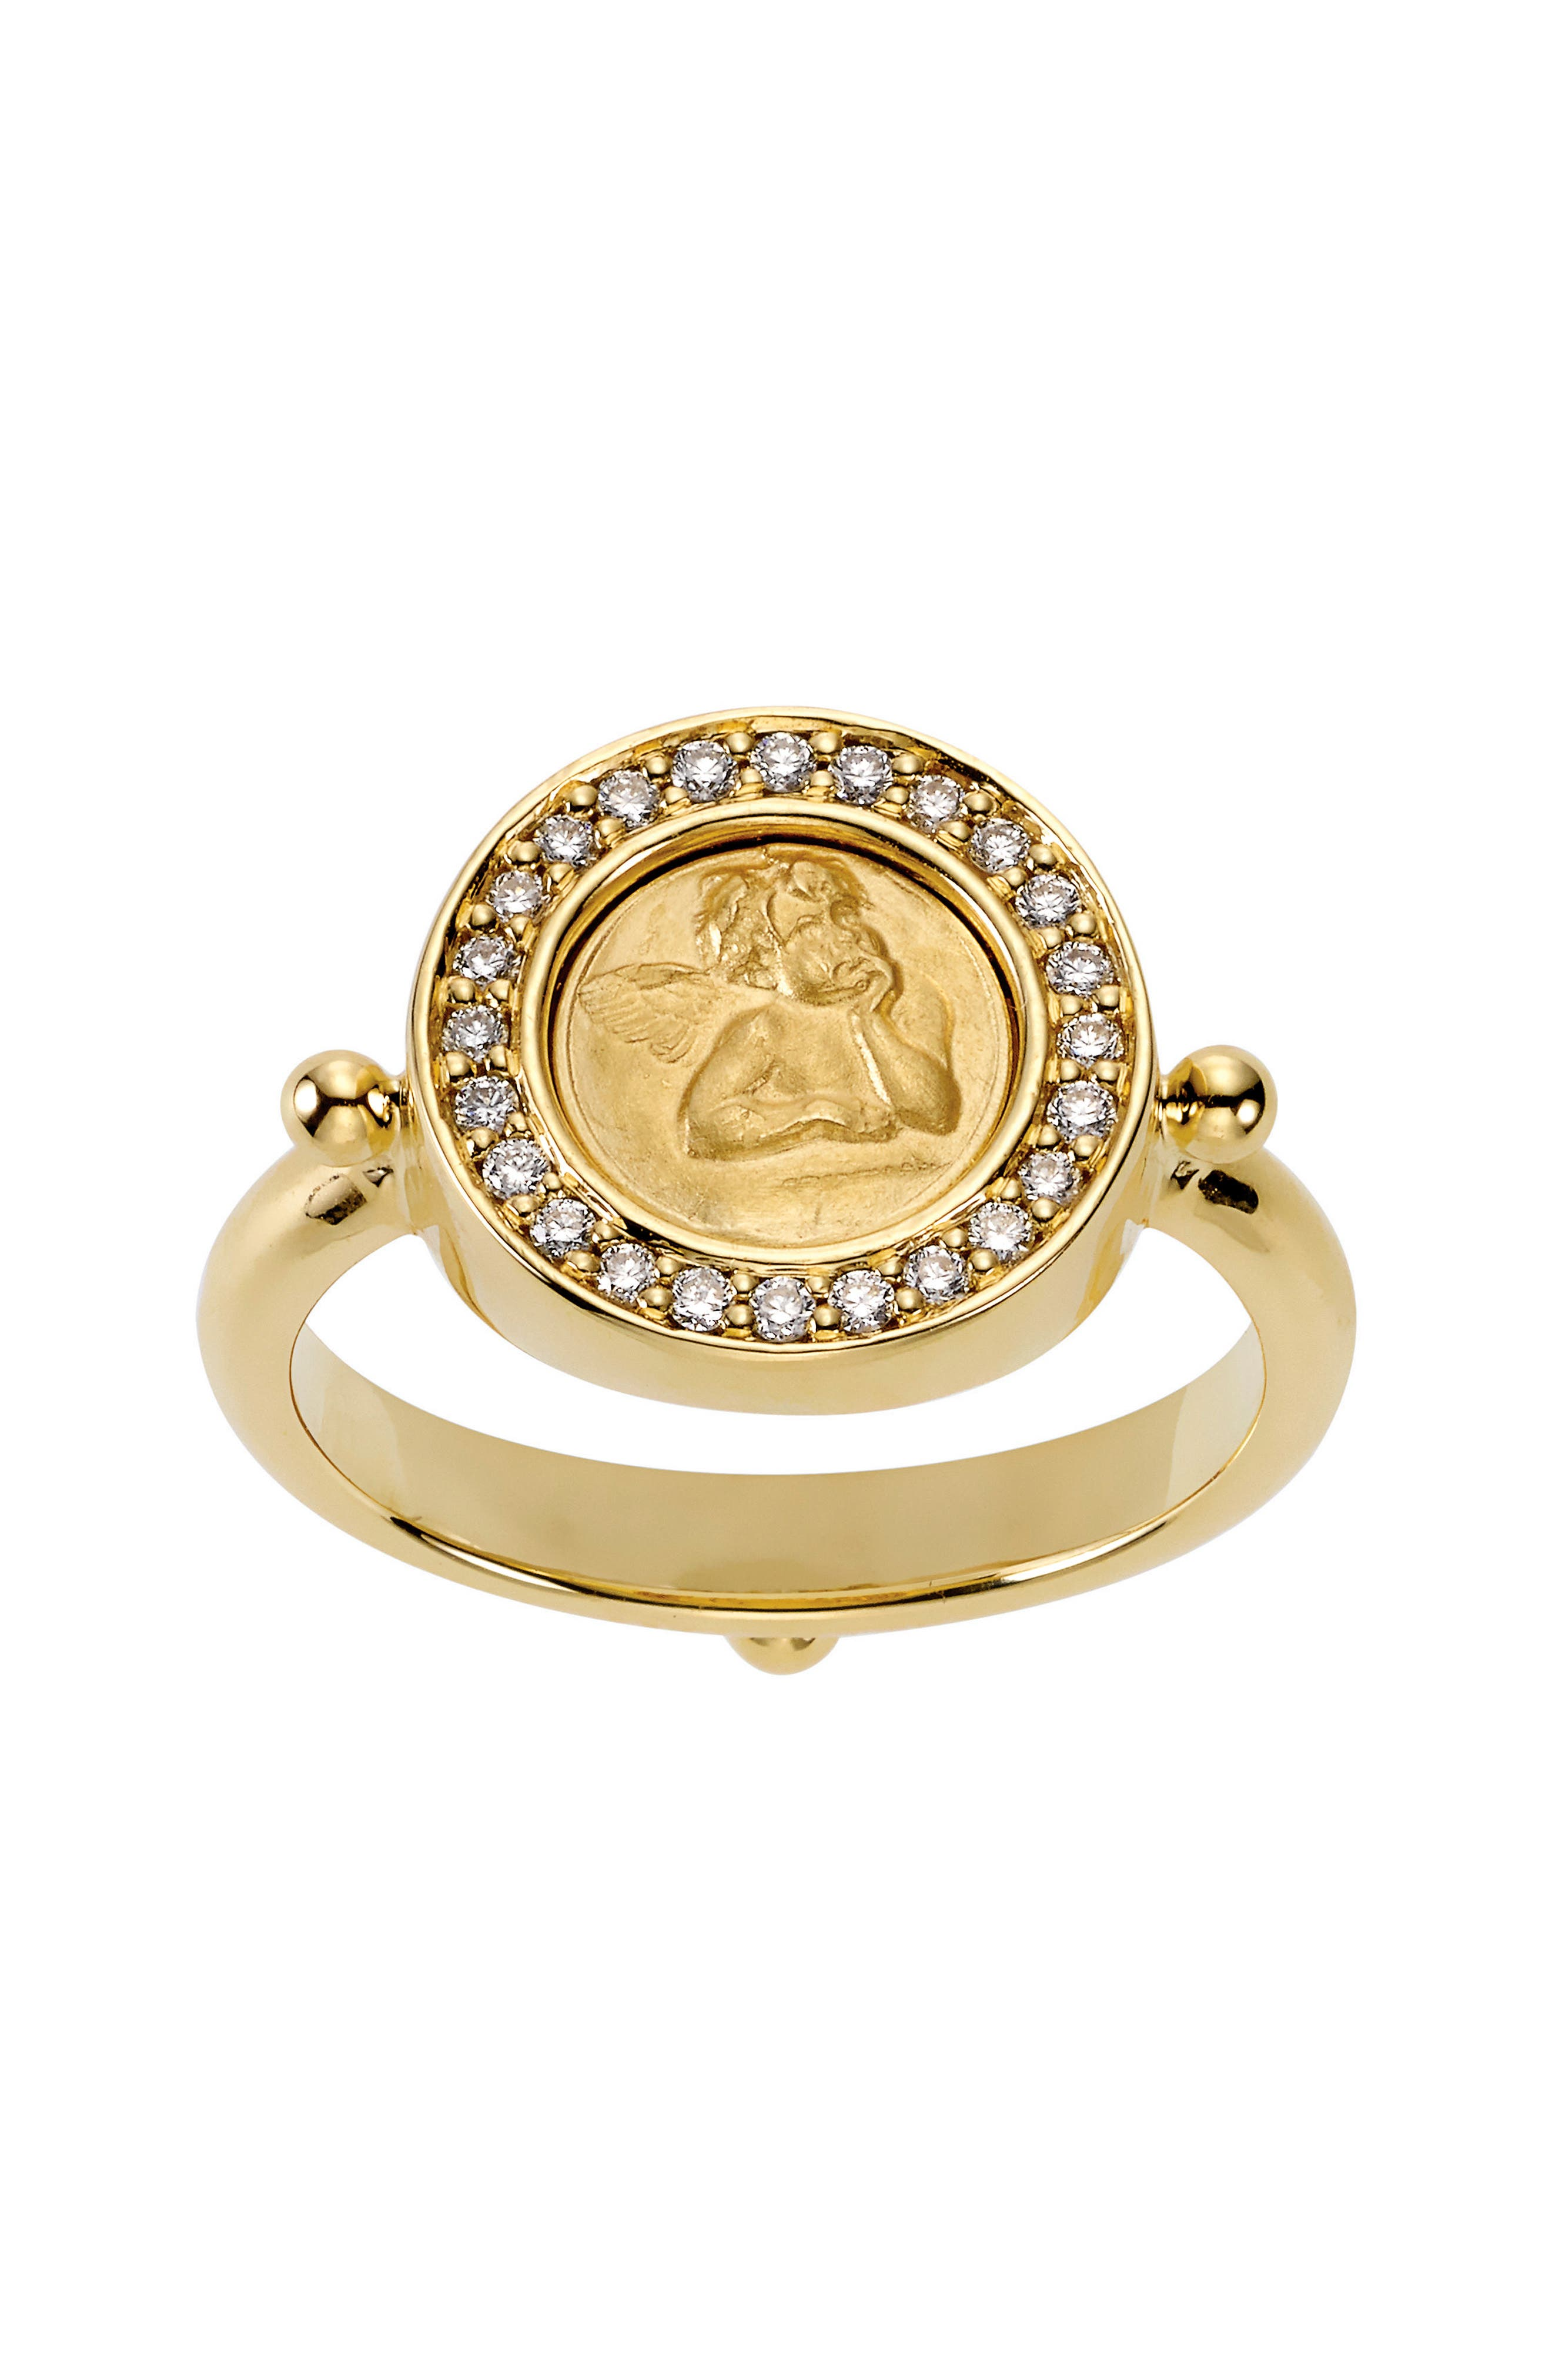 Temple St. Clair Diamond Pavé Ring,                             Main thumbnail 1, color,                             Yellow Gold